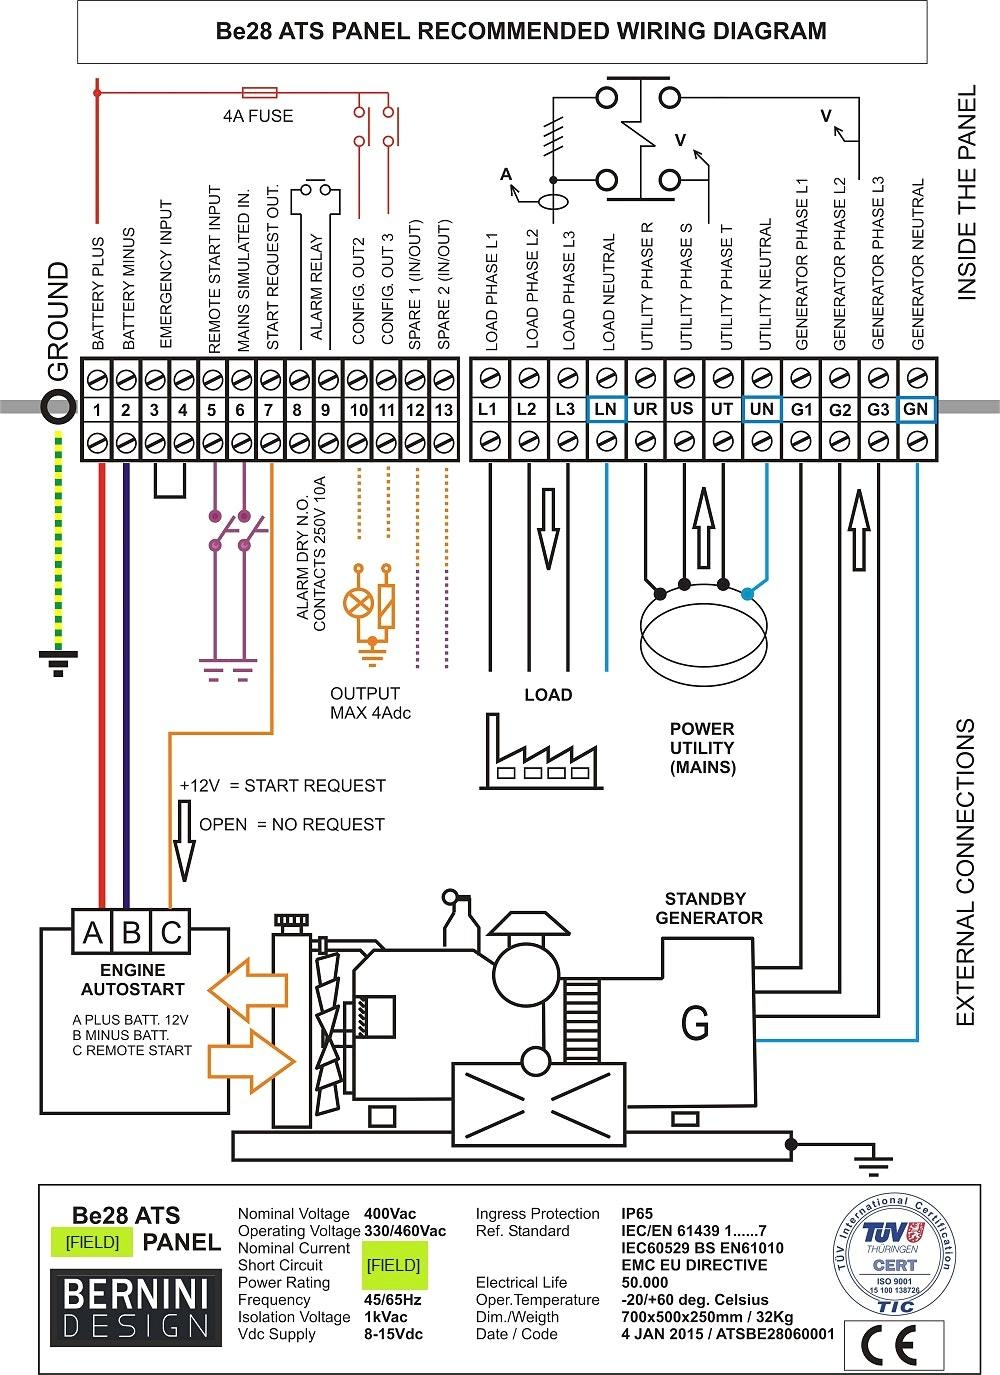 transfer switch wiring schematic Download-Generac Generator Transfer Switch Wiring Diagram Generac Automatic Transfer Switch Wiring Diagram Inside 6-p